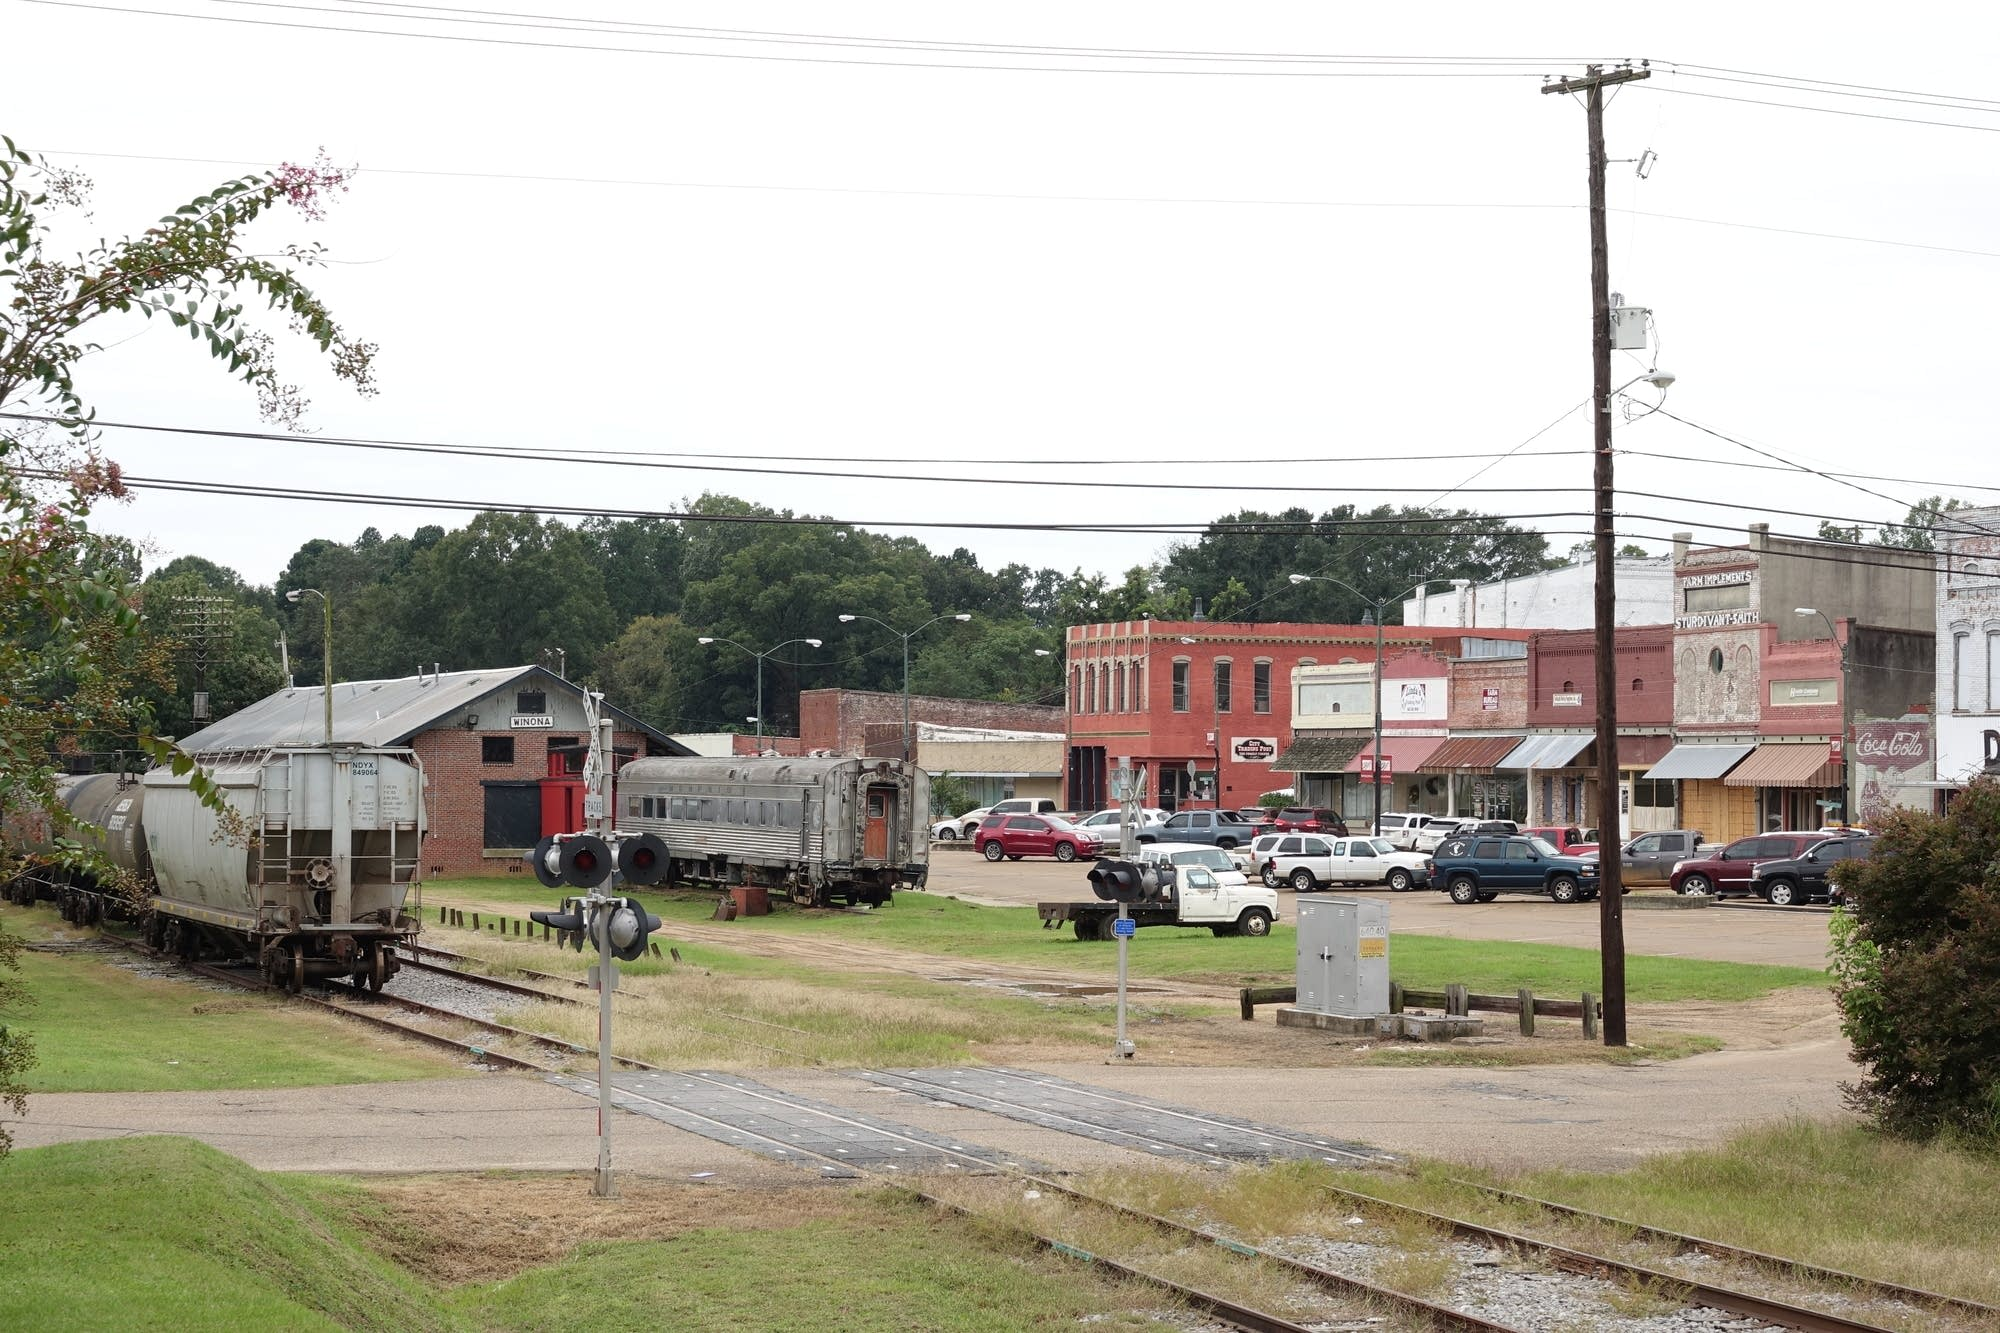 Downtown Winona, Mississippi